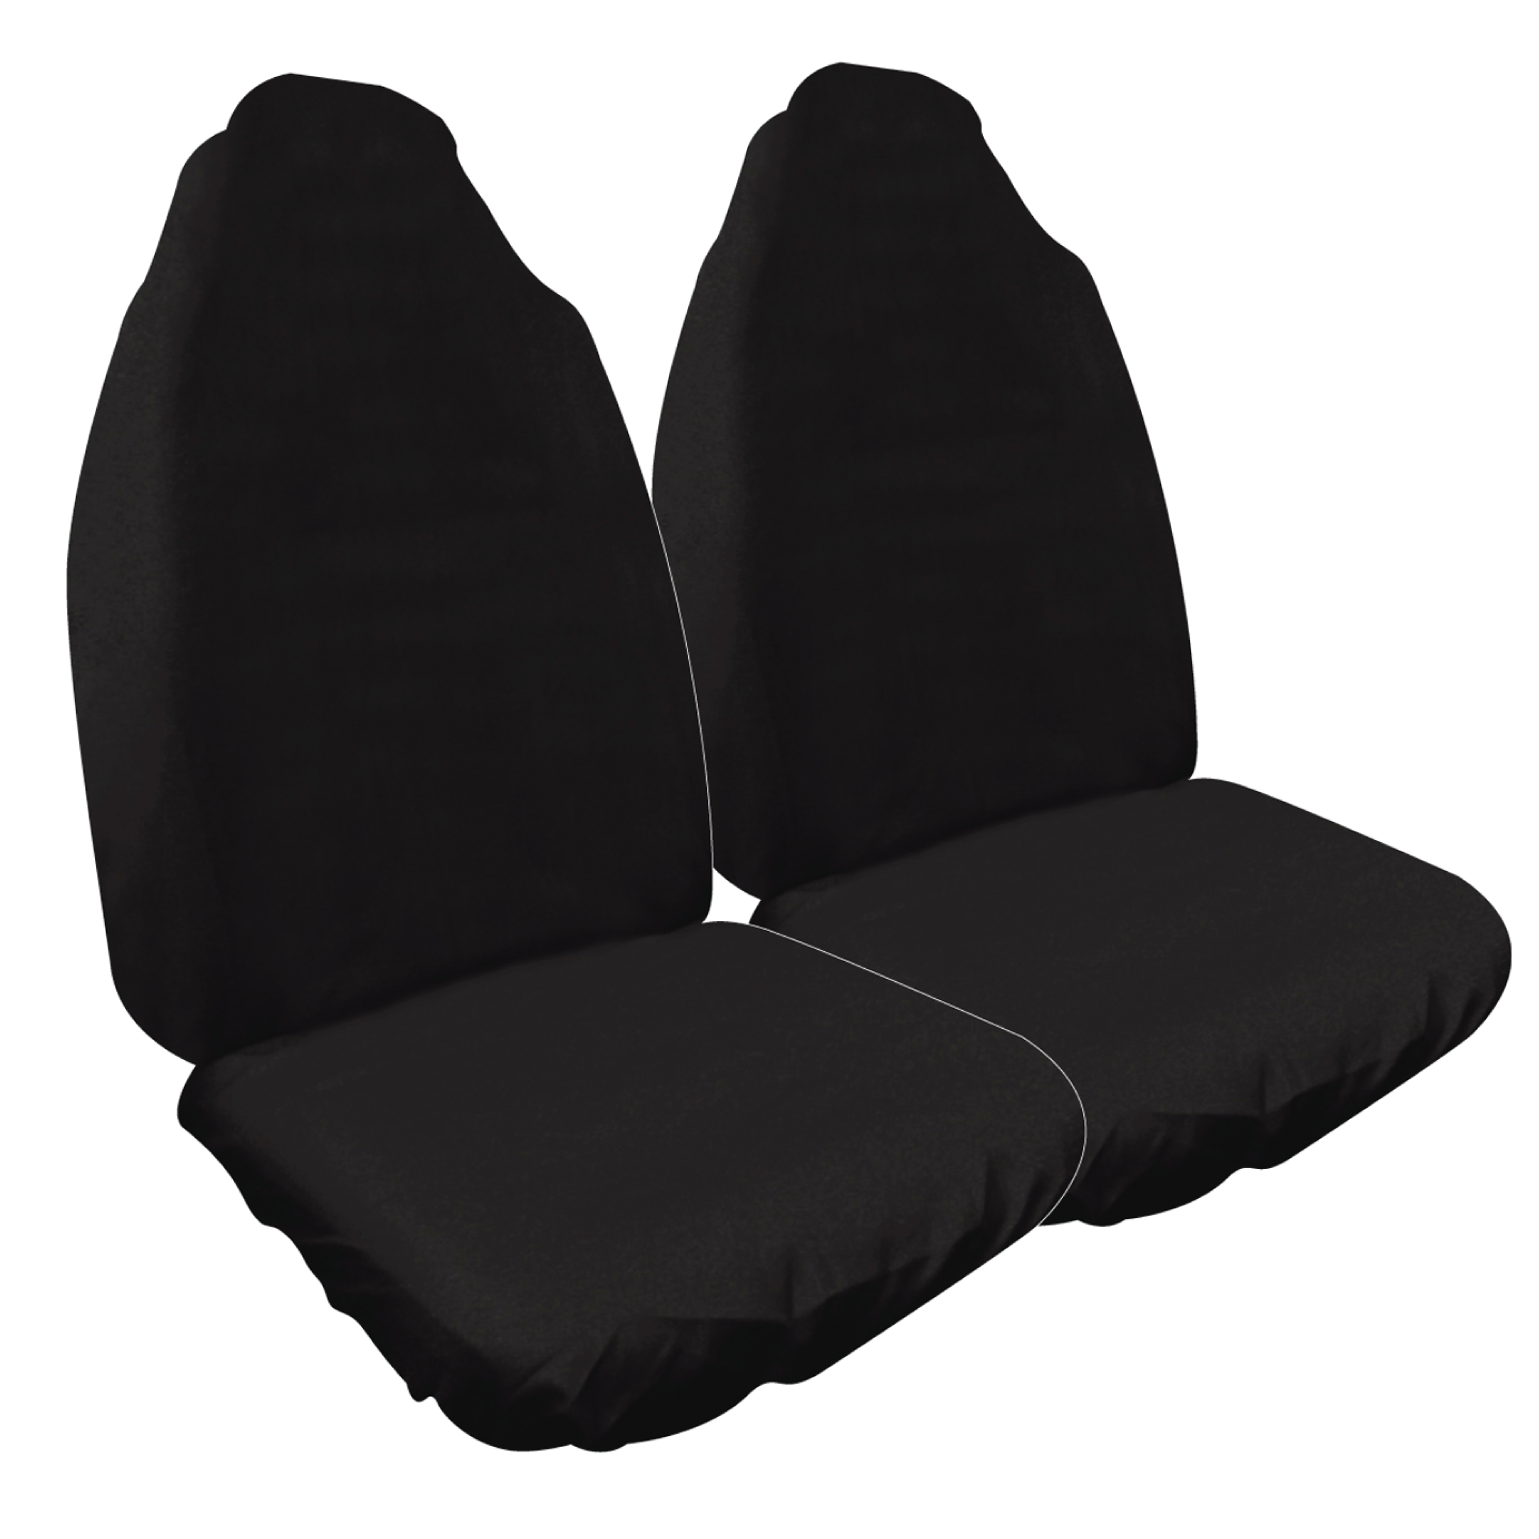 Custom Printed Seat Covers